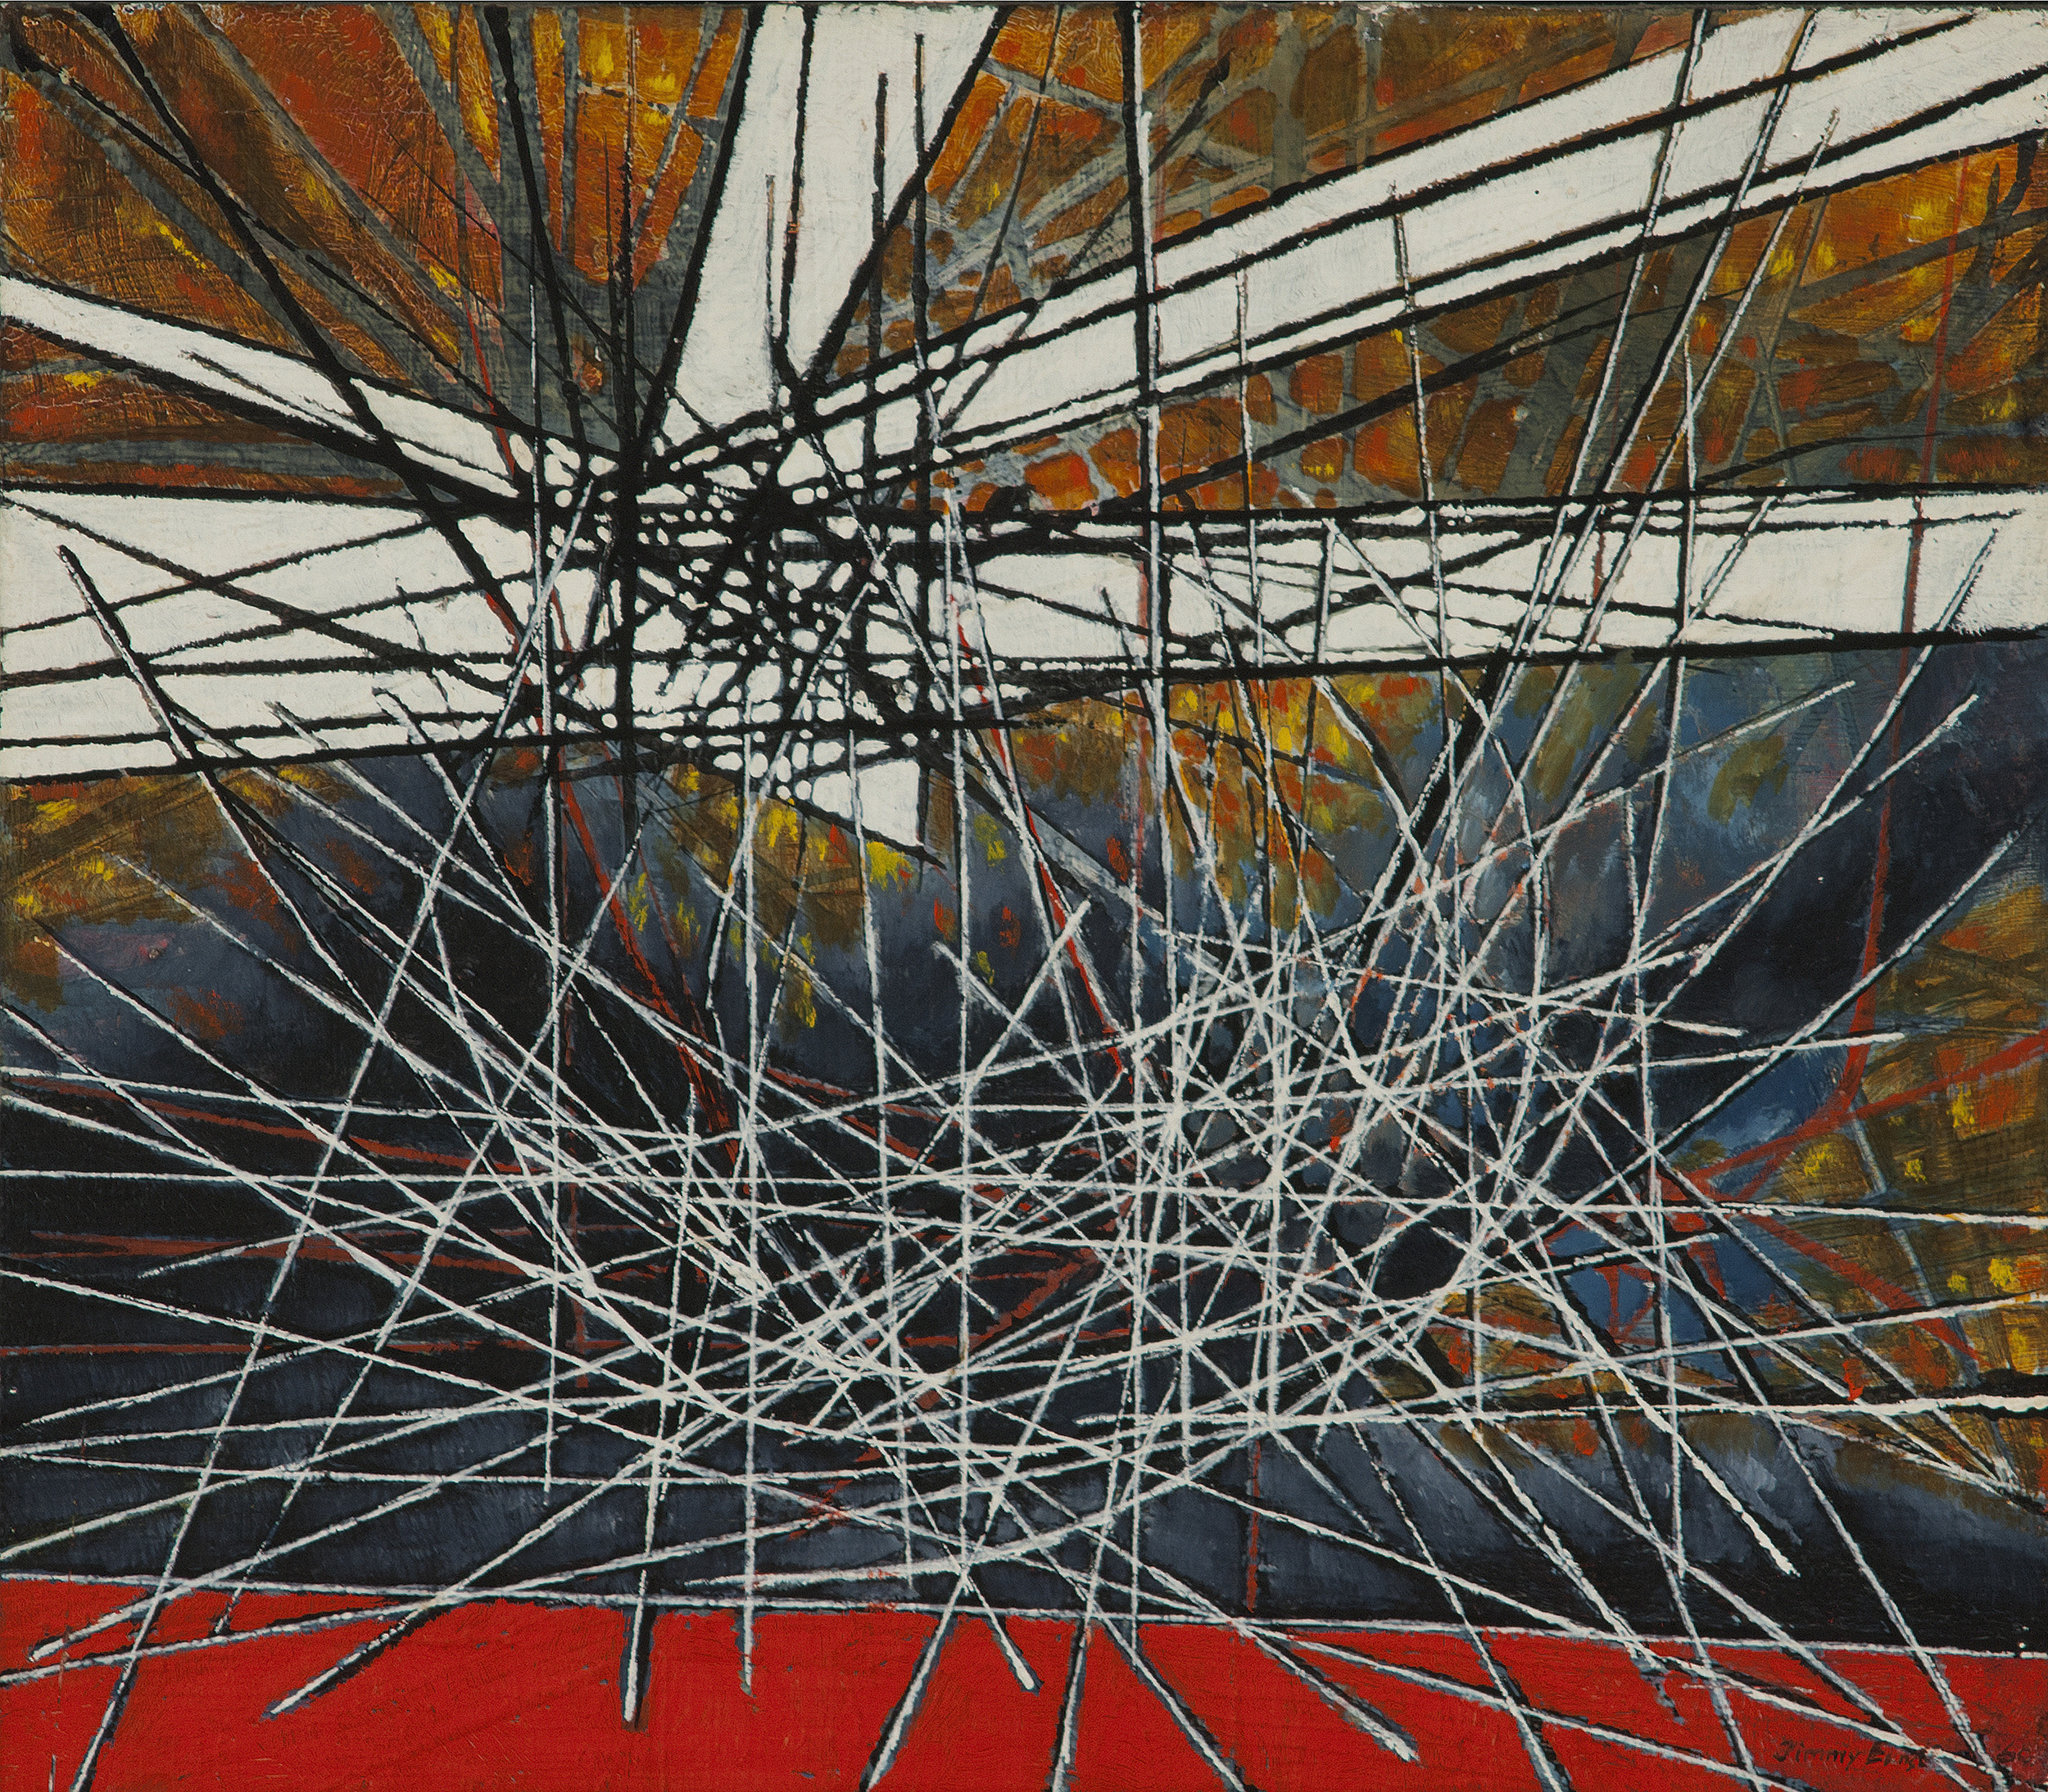 JIMMY ERNST Image Scape VII, 1960 oil on masonite, 6 x 6 inches Signed Jimmy Ernst (lower right)